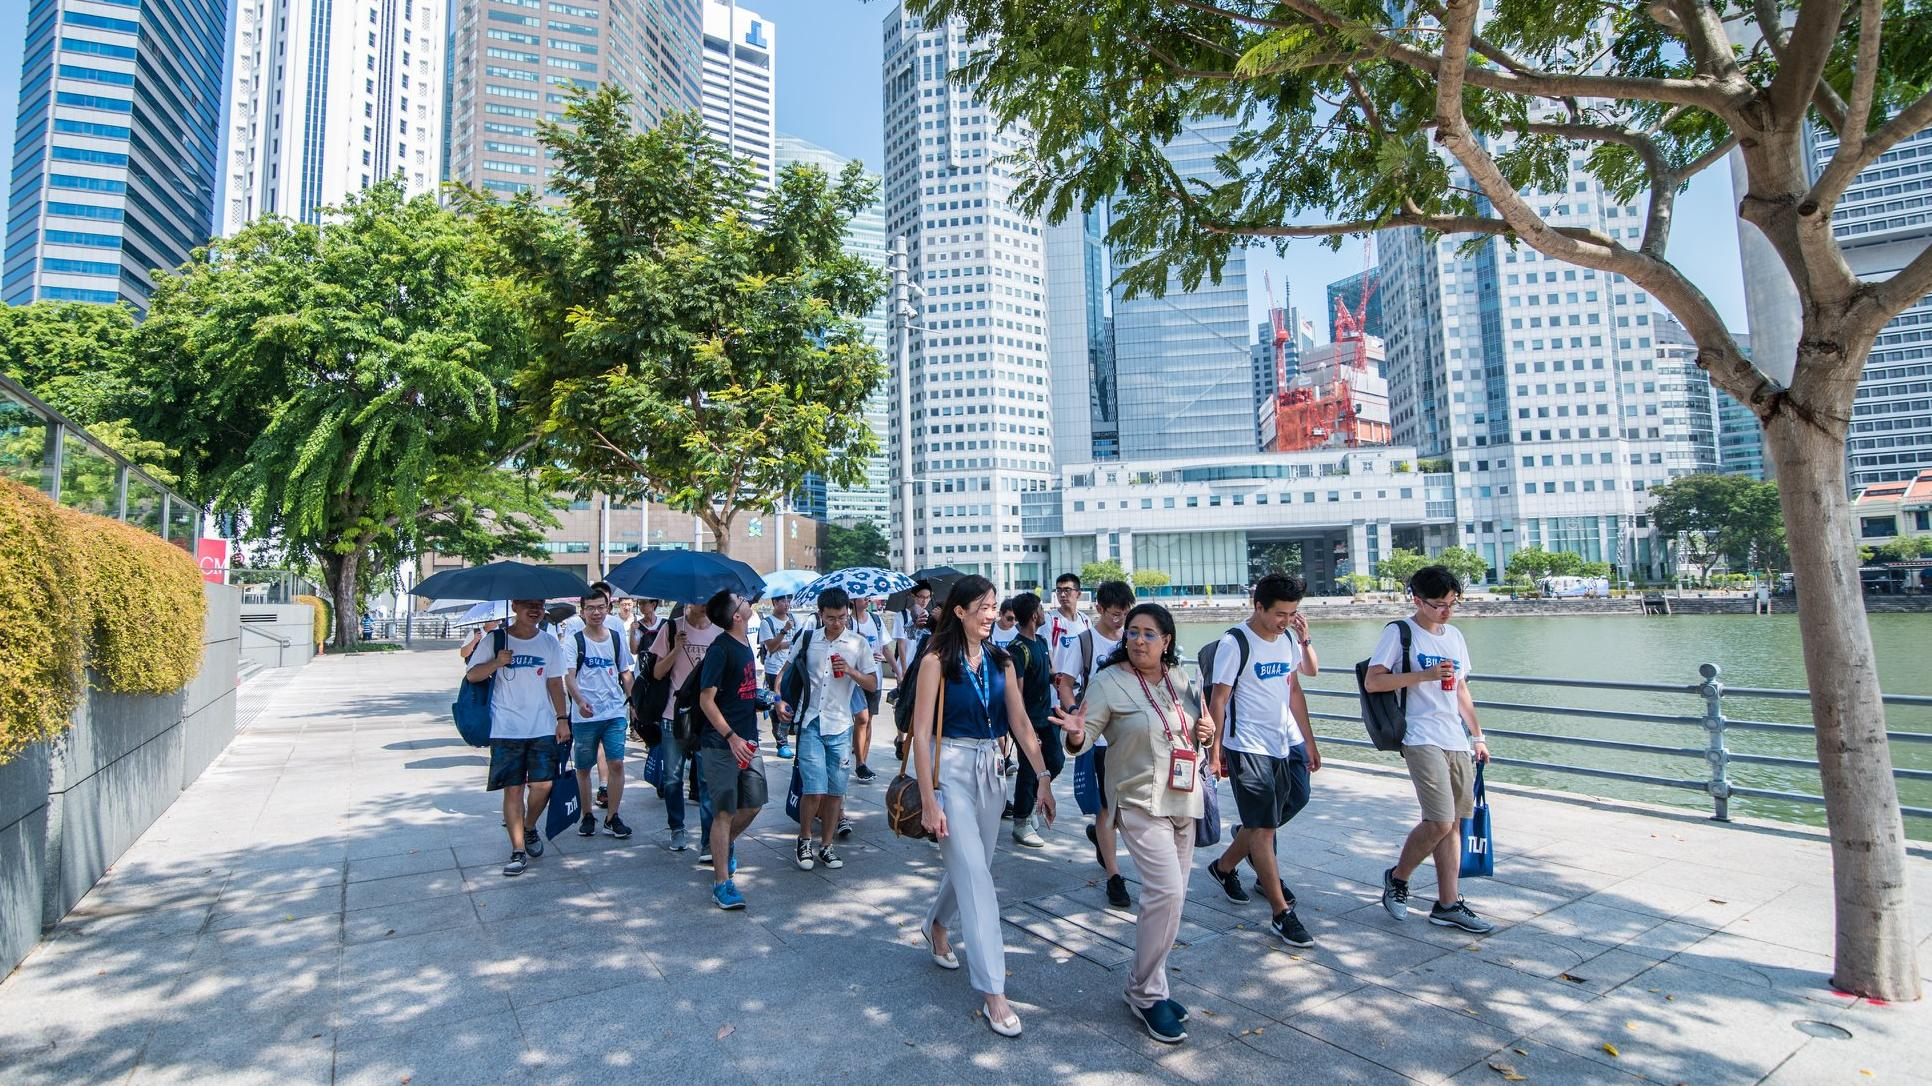 A group of students walking through the city of Singapore